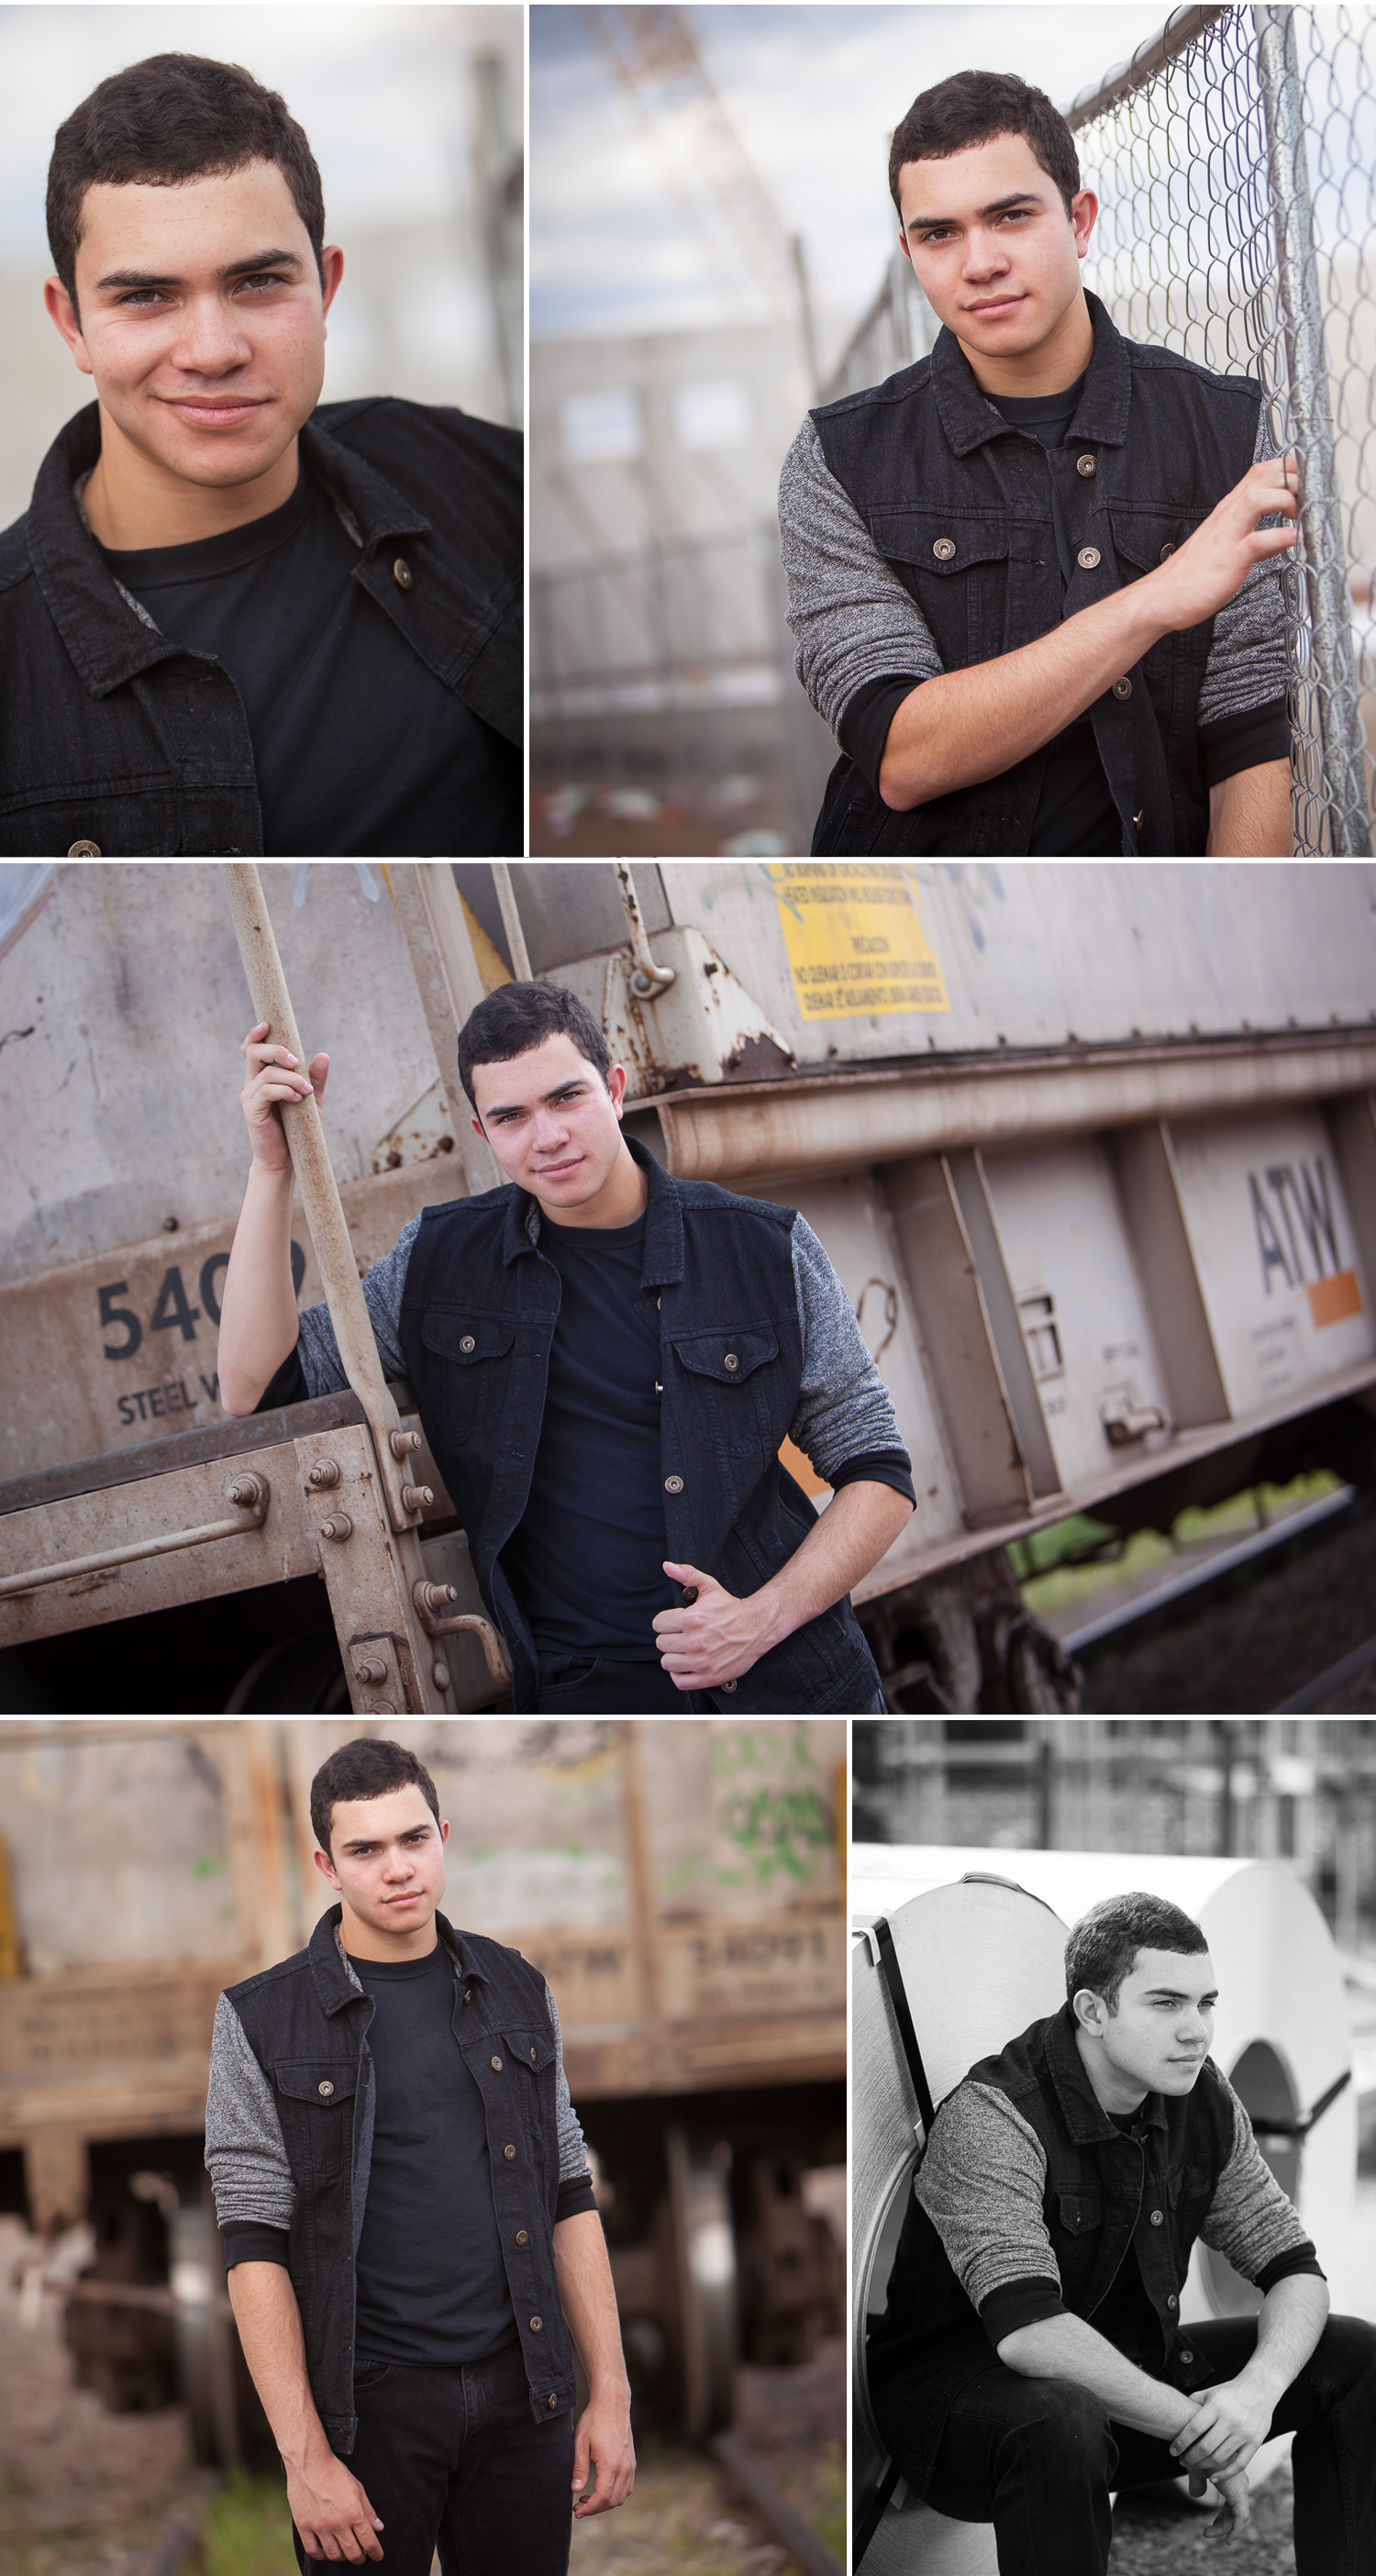 Senior Guy Portraits with construction site and vintage train, with Denver photographer Jennifer Koskinen of Merritt Portrait Studio